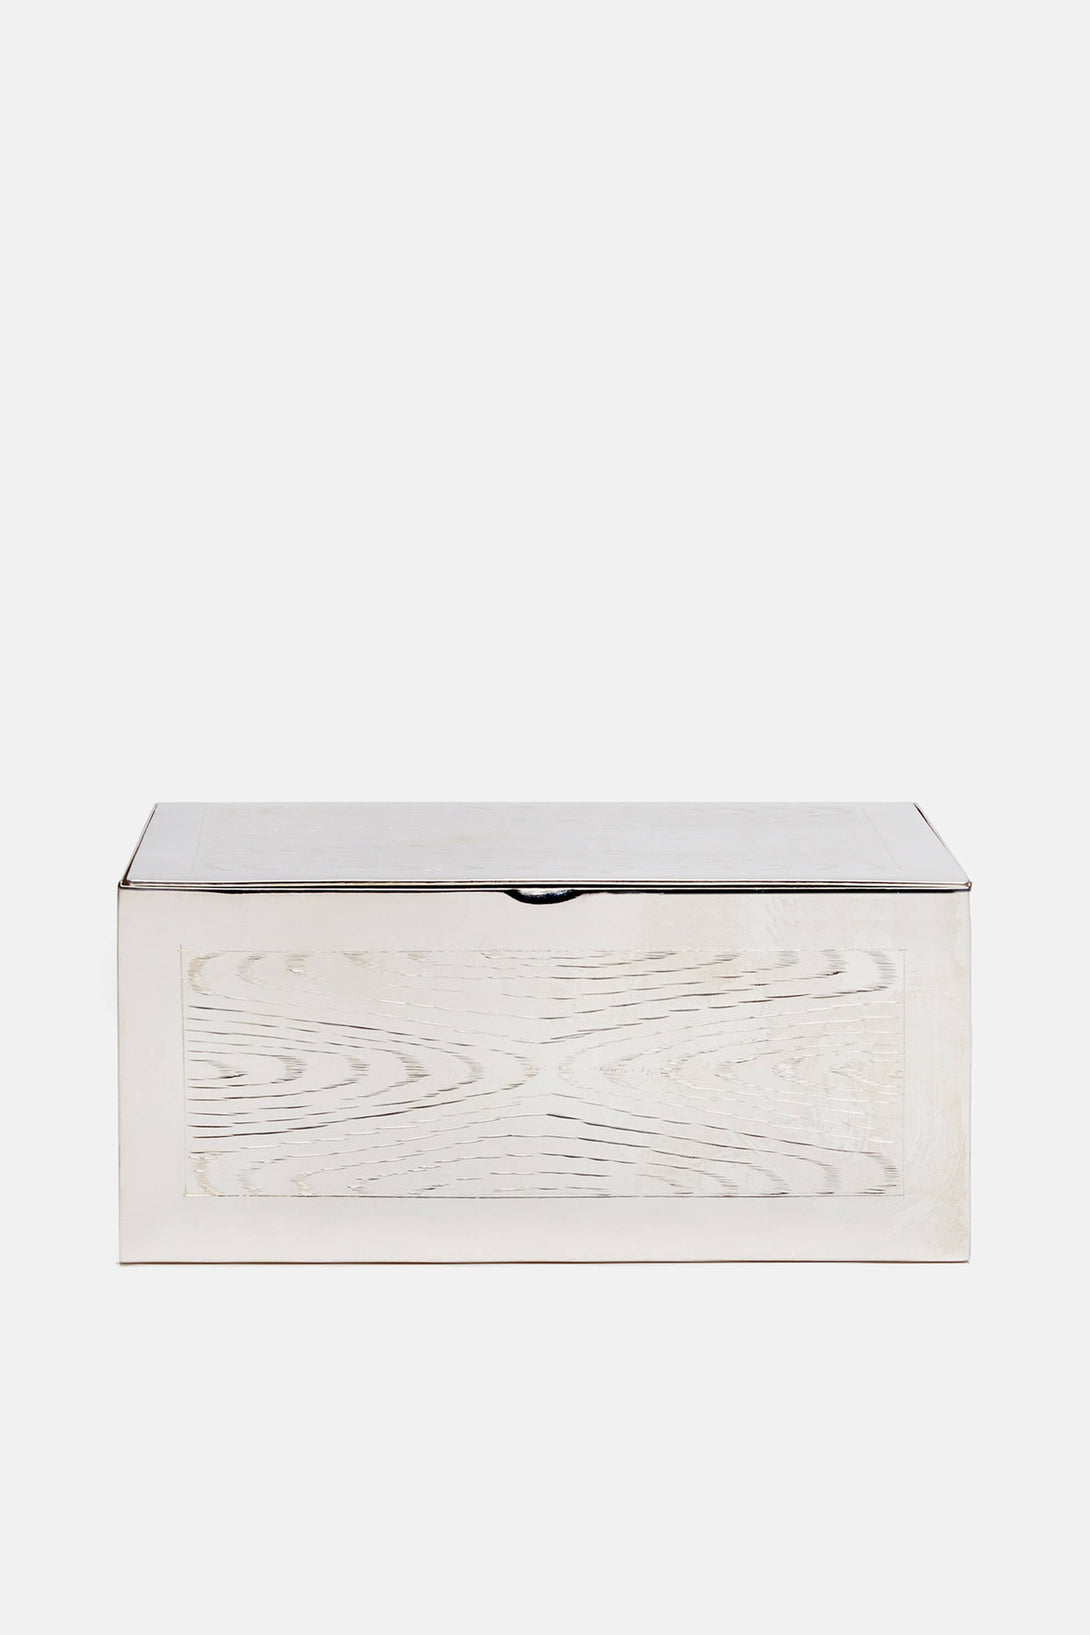 Hermes Wood-Grained Silver Box